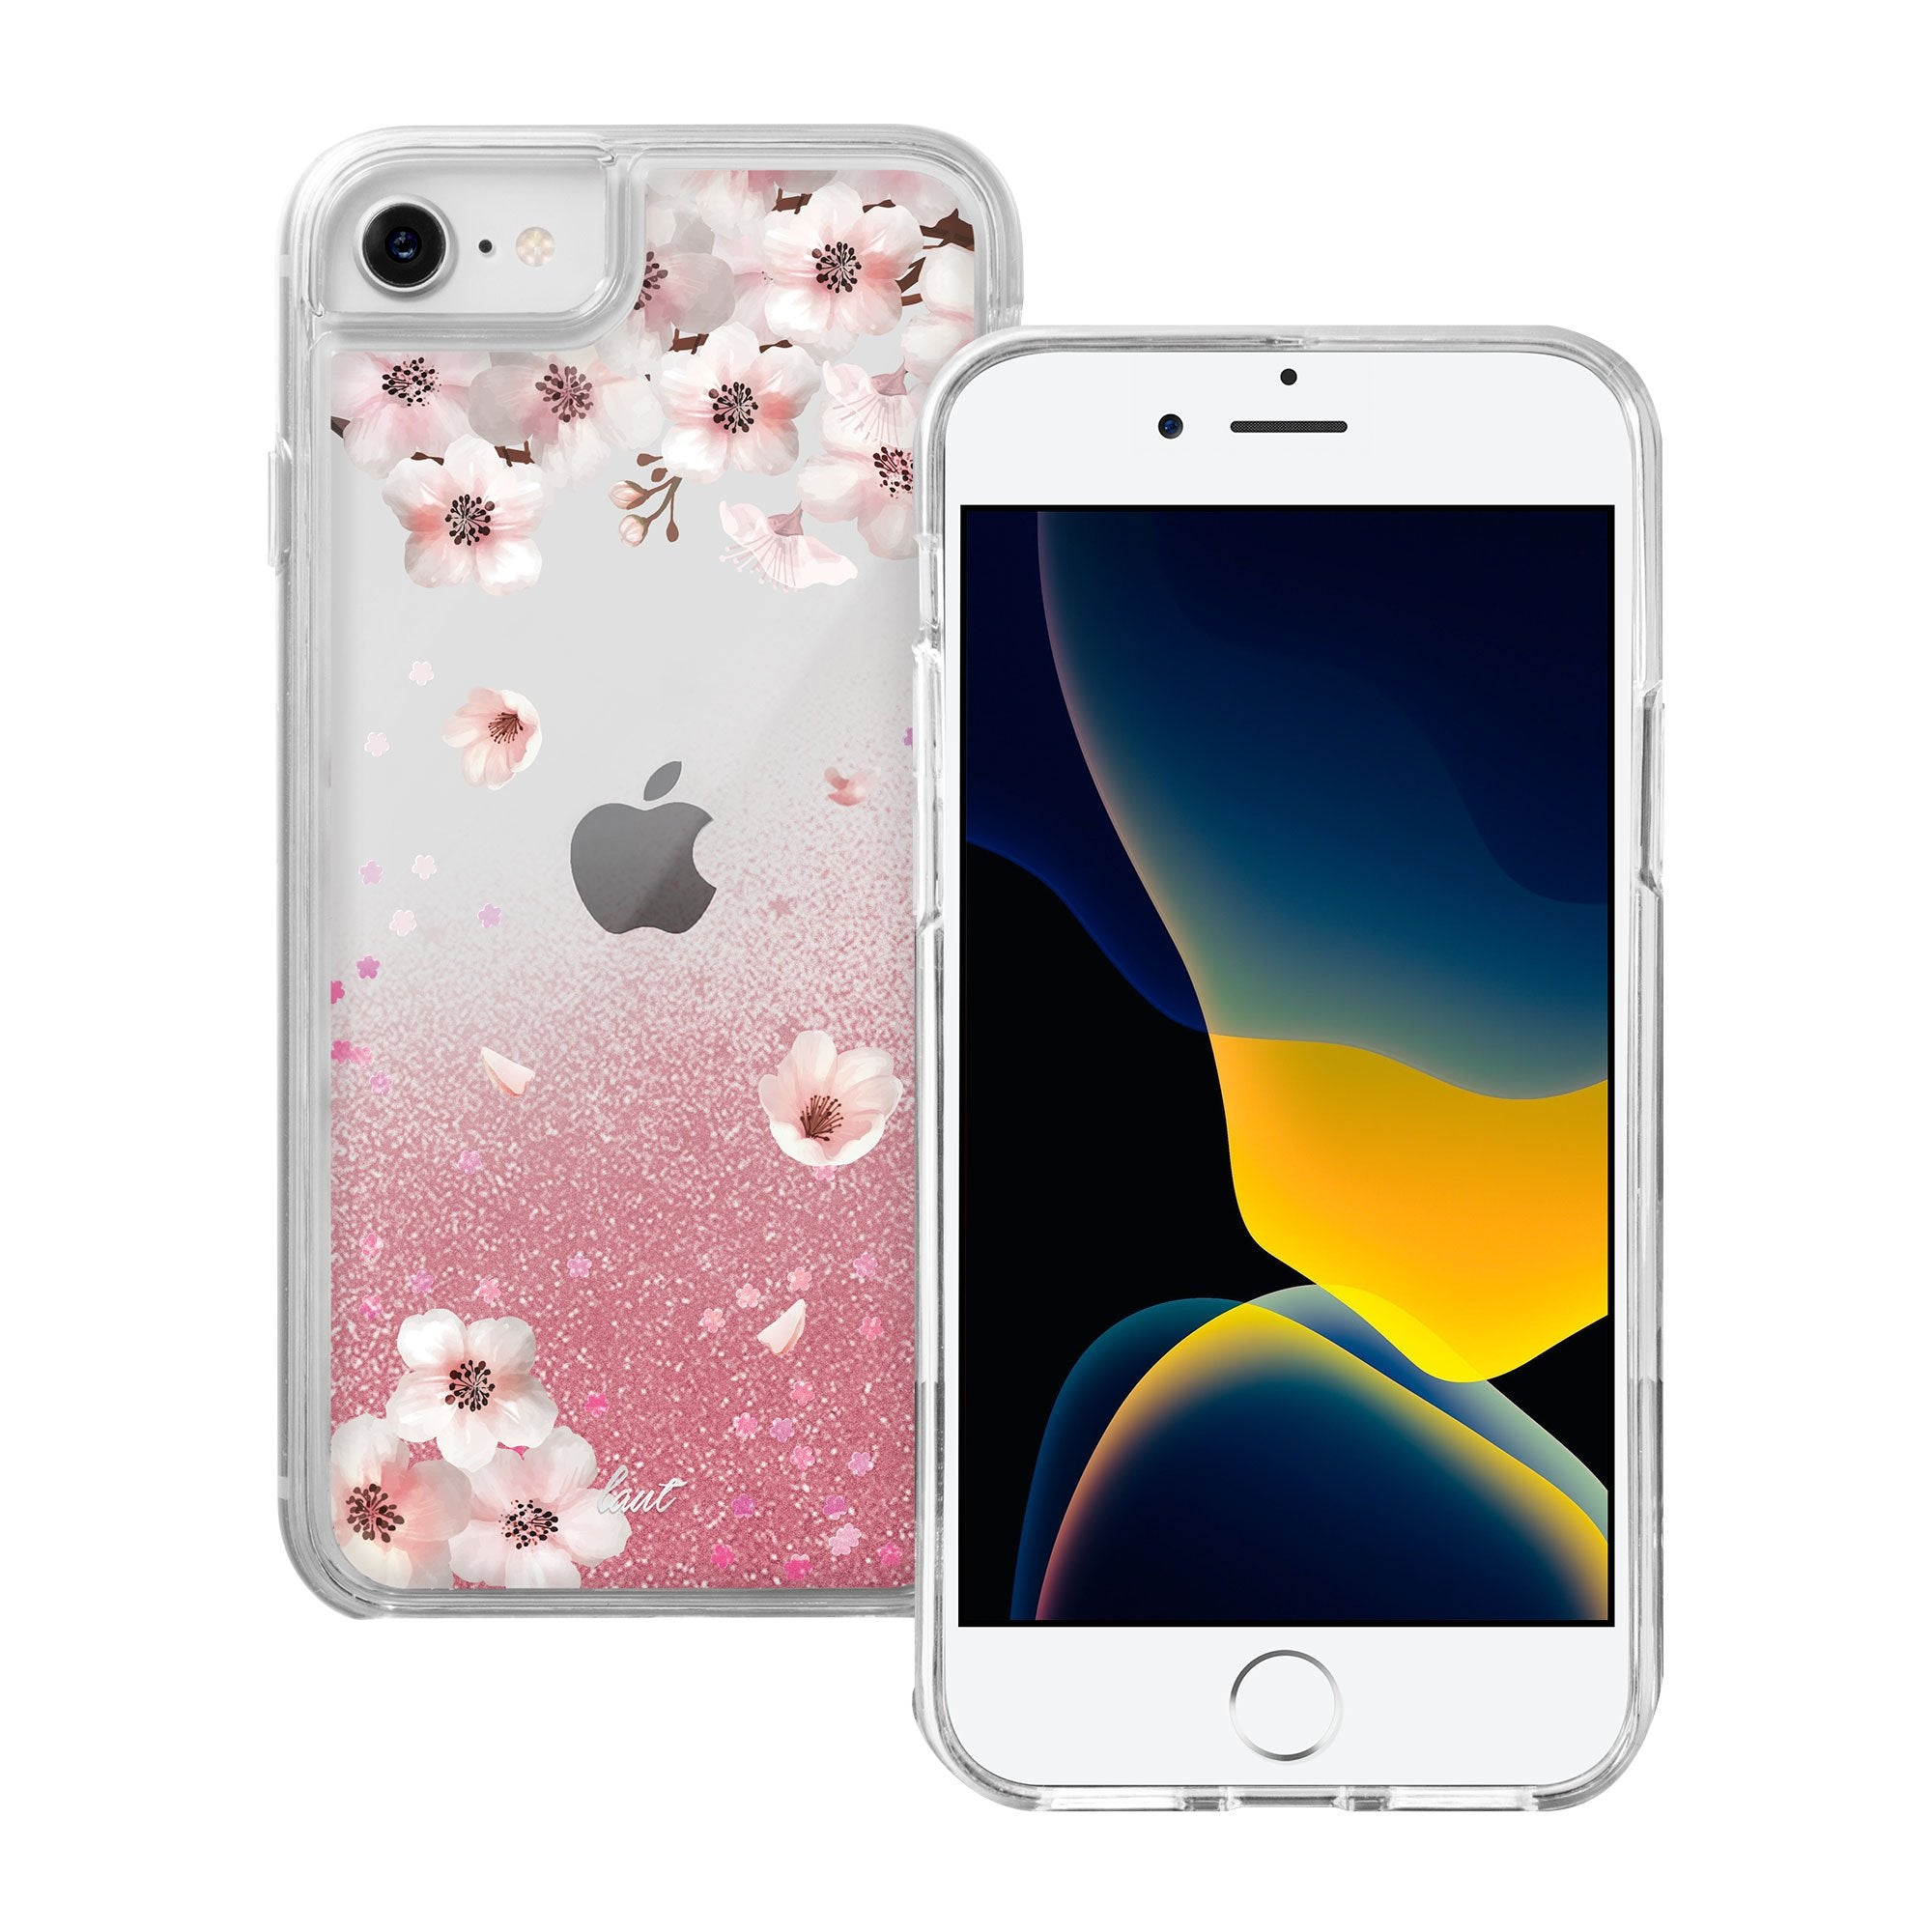 LAUT-Liquid GLITTER SAKURA case for iPhone SE 2020 / iPhone 8/7-Case-For iPhone SE 2020/8/7